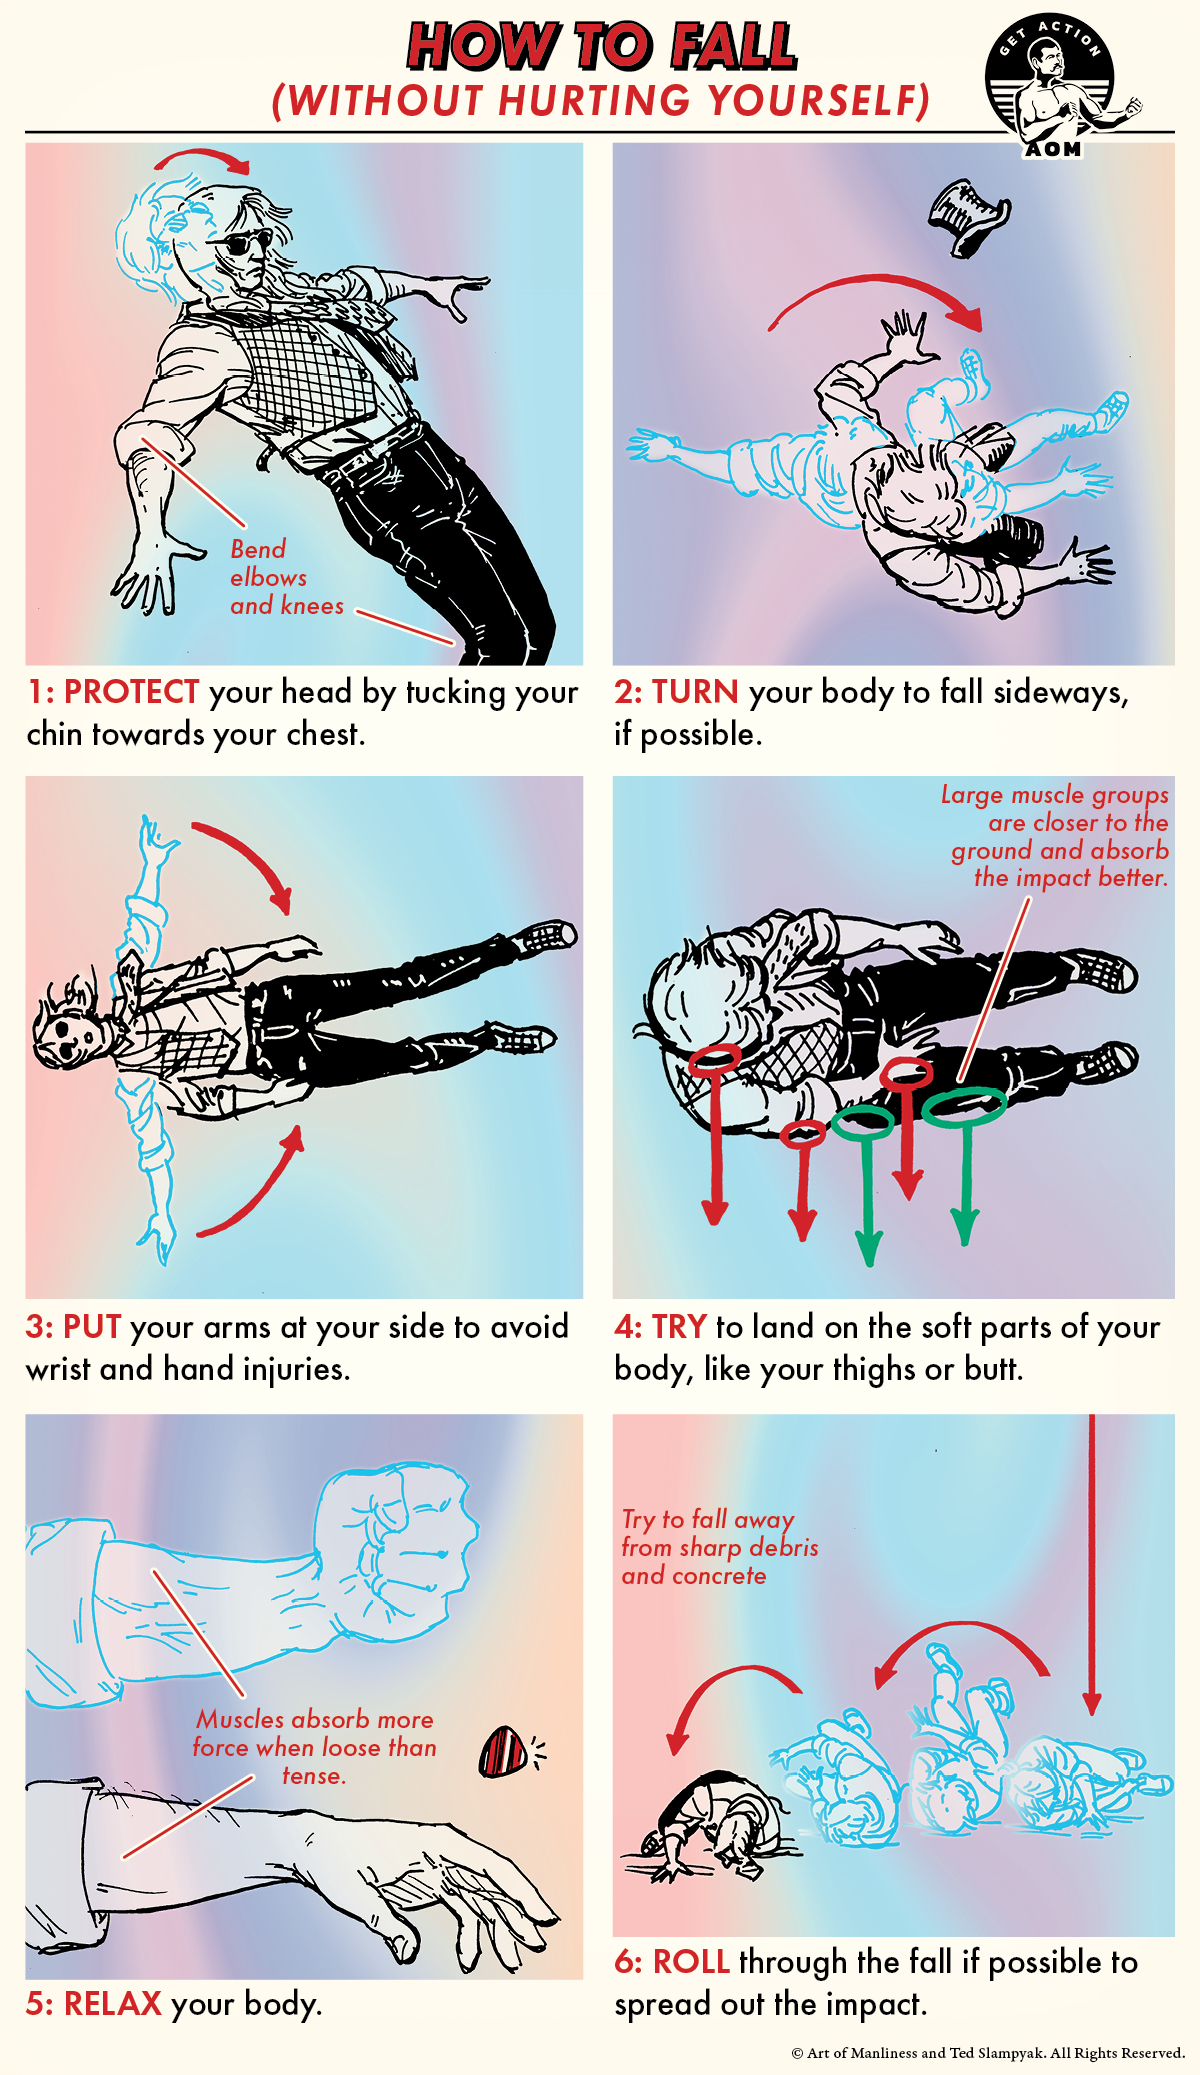 How to Fall (Without Hurting Yourself) comic guide.